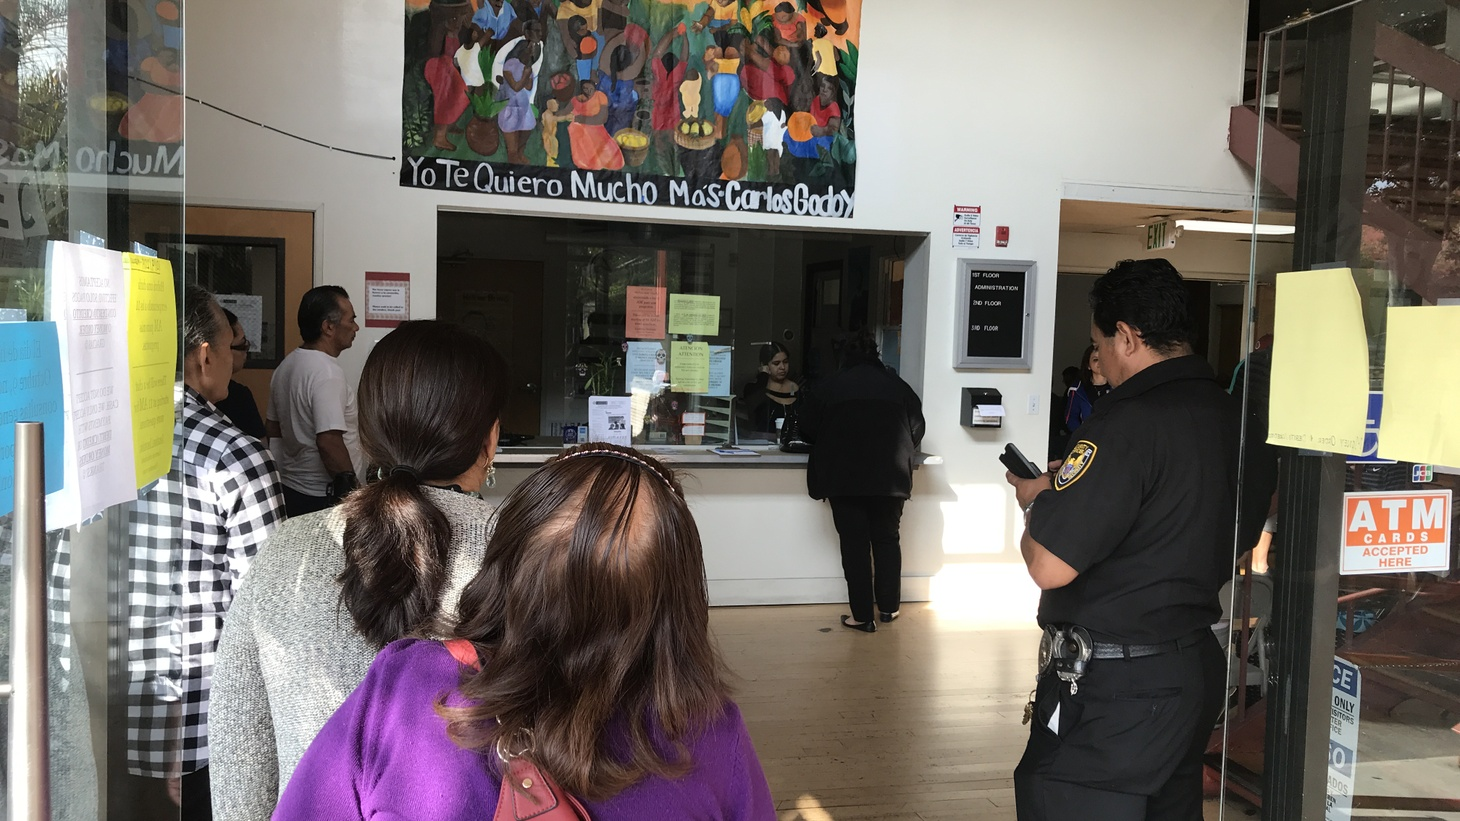 People in line at the Central American Resource Center (CARECEN) in Los Angeles, which takes walk-in appointments for legal help.